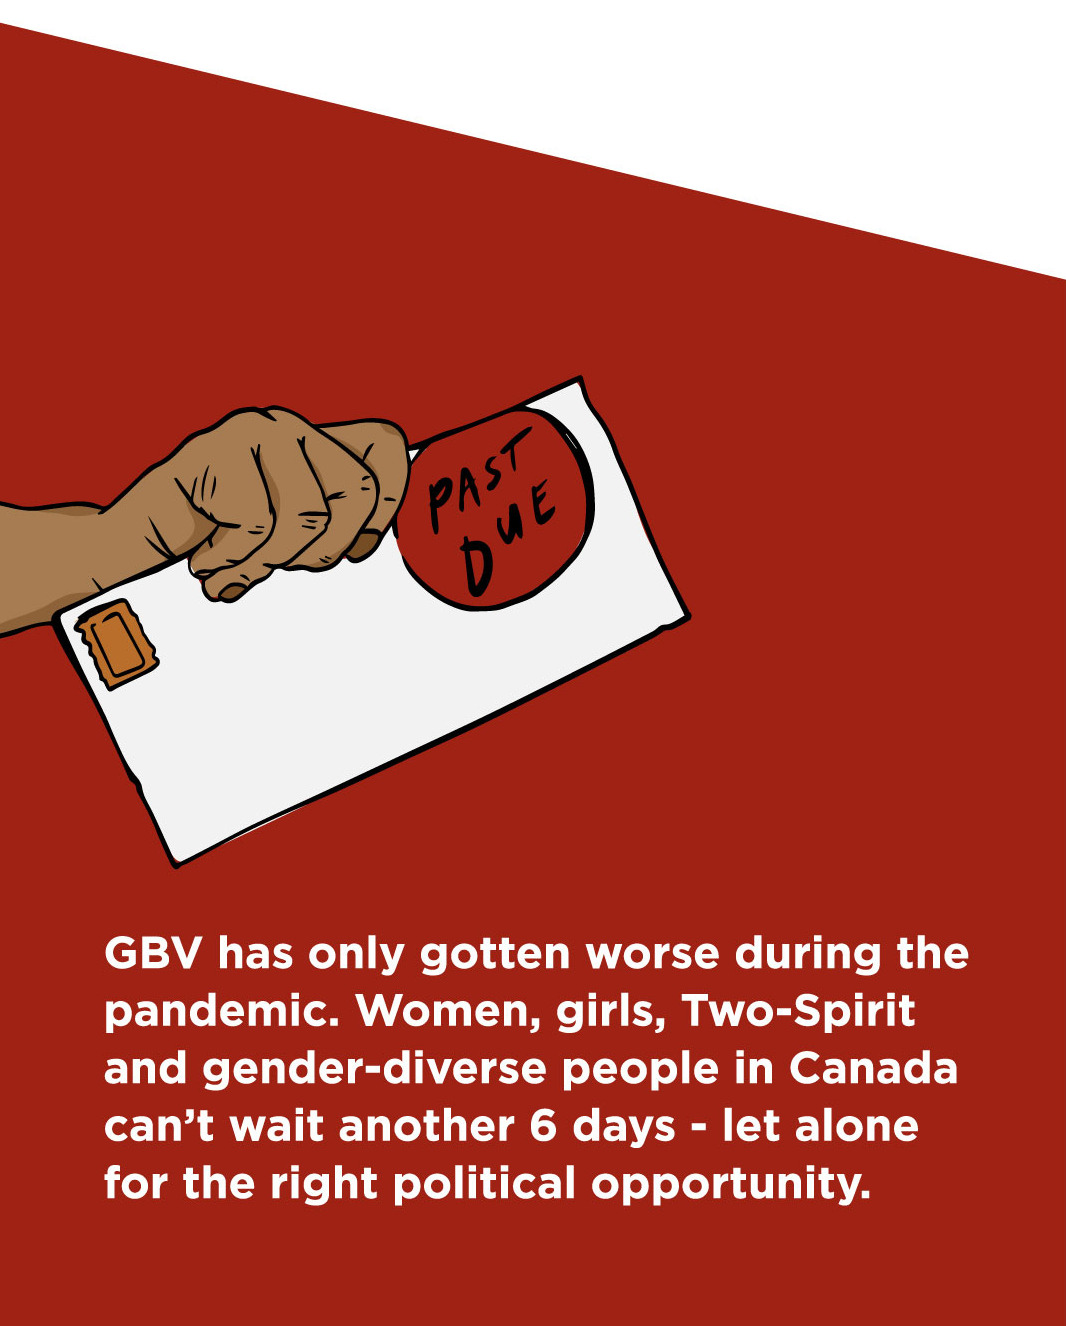 Gender Based Violence has only gotten worse during the pandemic. Plan to end Gender-Based violence is long Past Due.